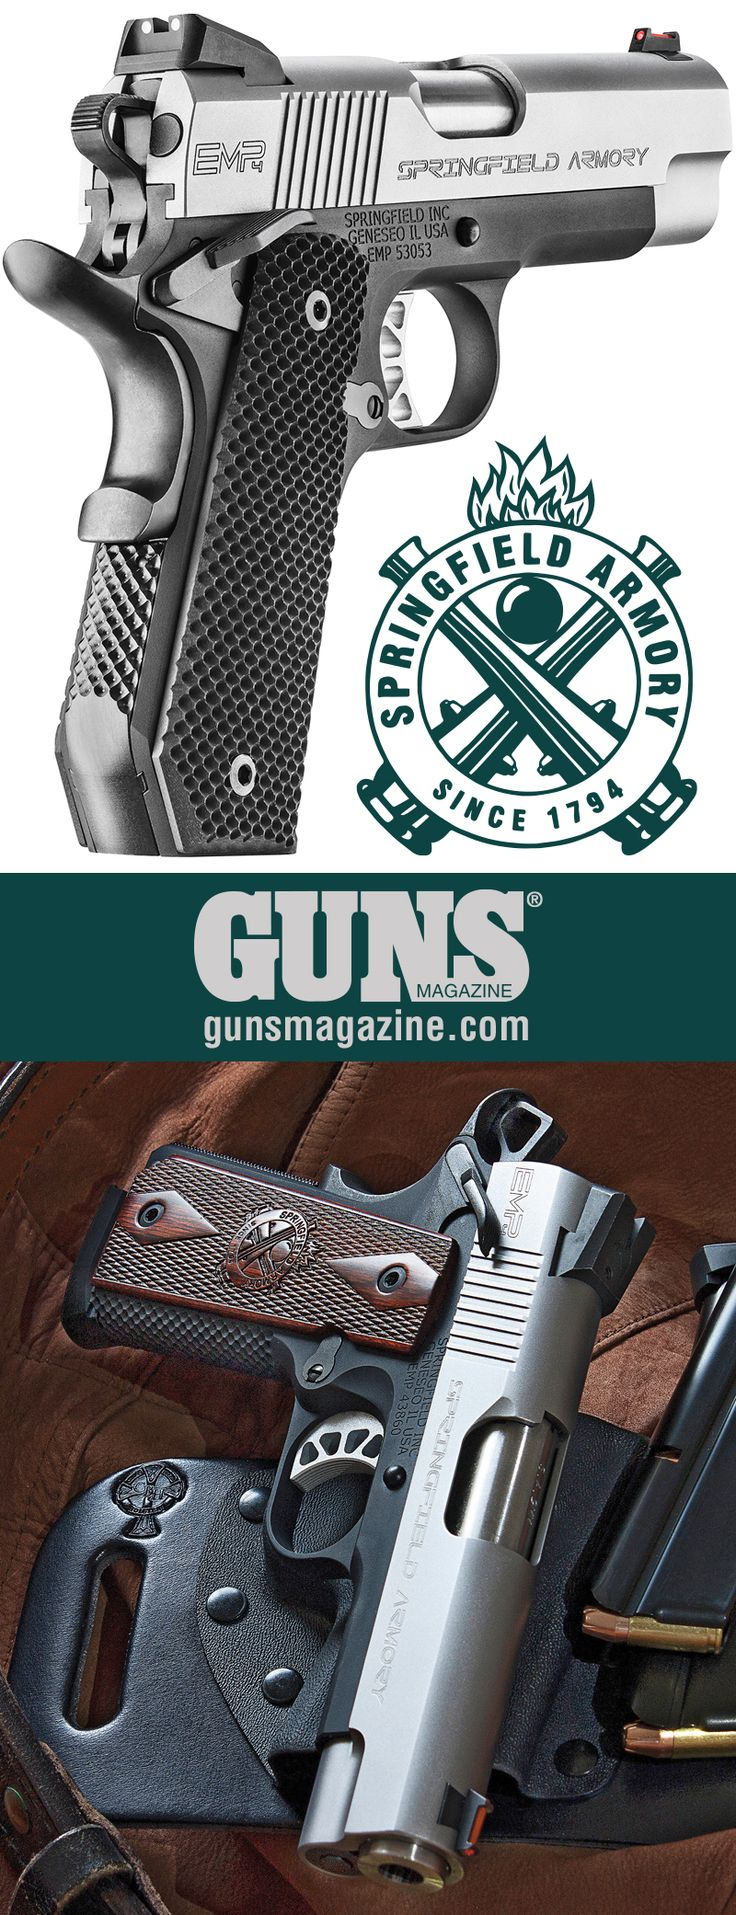 A Less-Filling Handful | Springfield's EMP4 Solves The 9mm/1911 Conundrum | By Jeff John | The Springfield Armory EMP4 9mm is a mid-size belt pistol offering 10+1 capacity and reduced grip size in a 1911. | © GUNS Magazine 2017